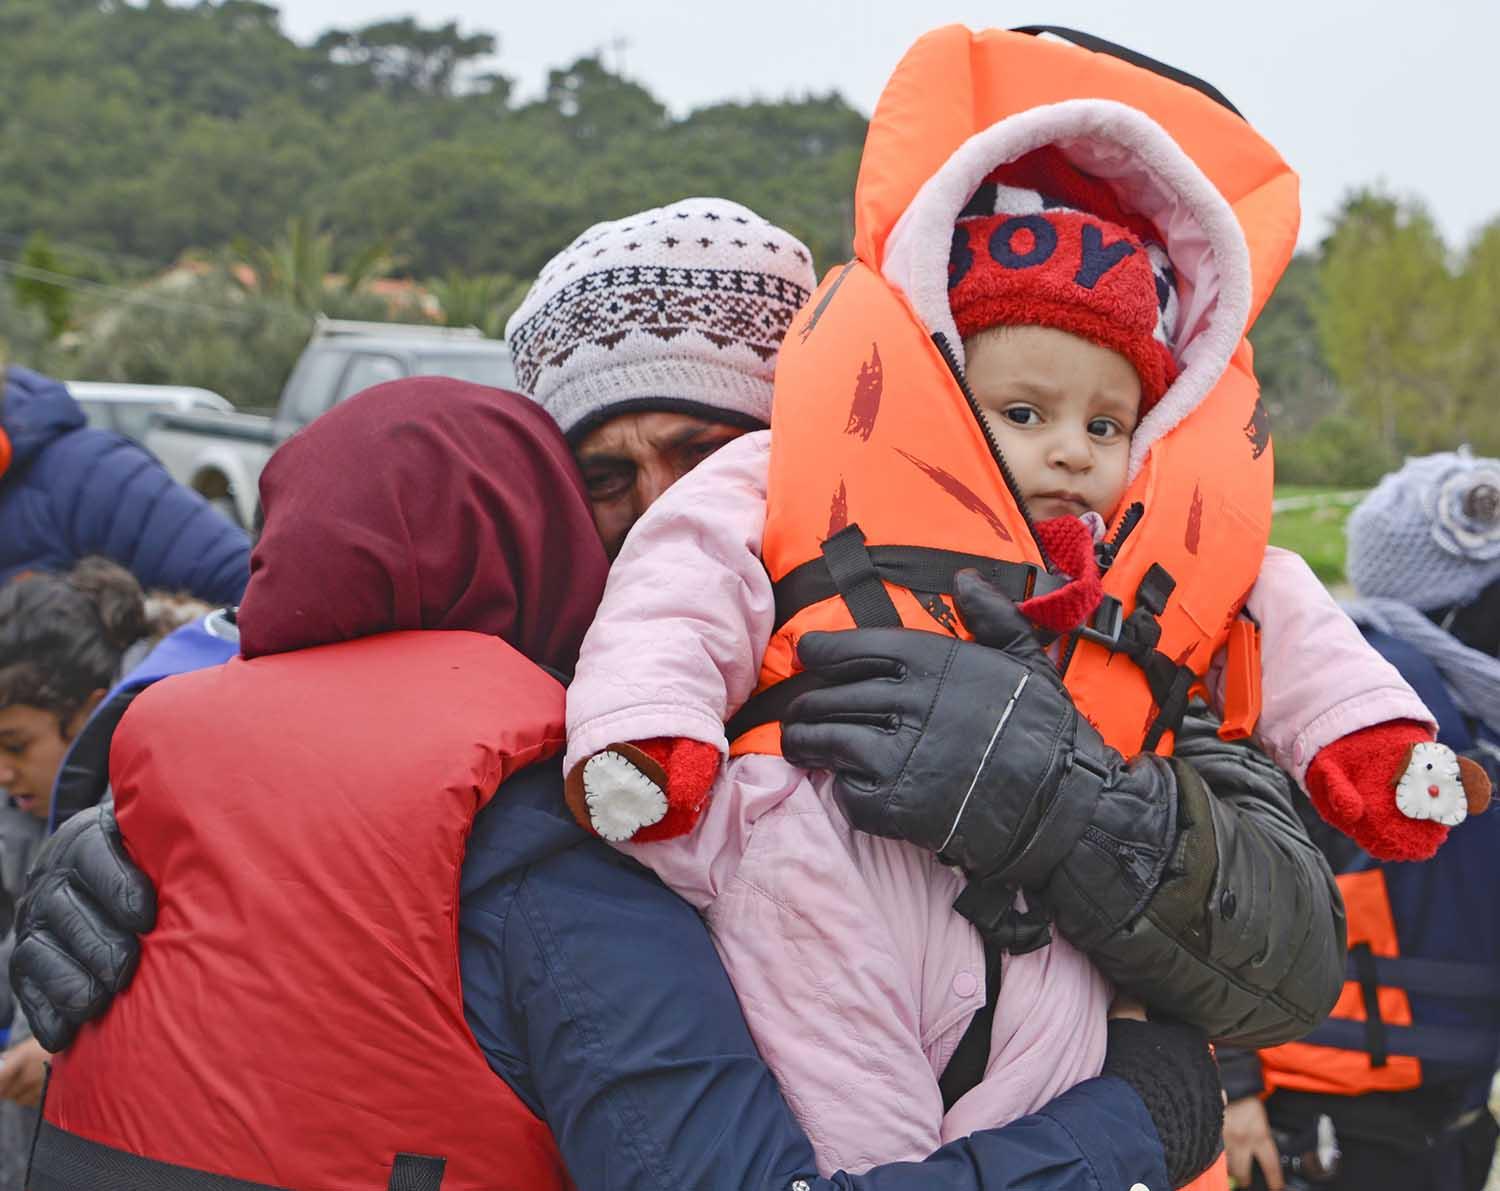 Refugee parents embrace their baby boy after upon arrival at Lesvos, Greece, after fleeing from their home country.